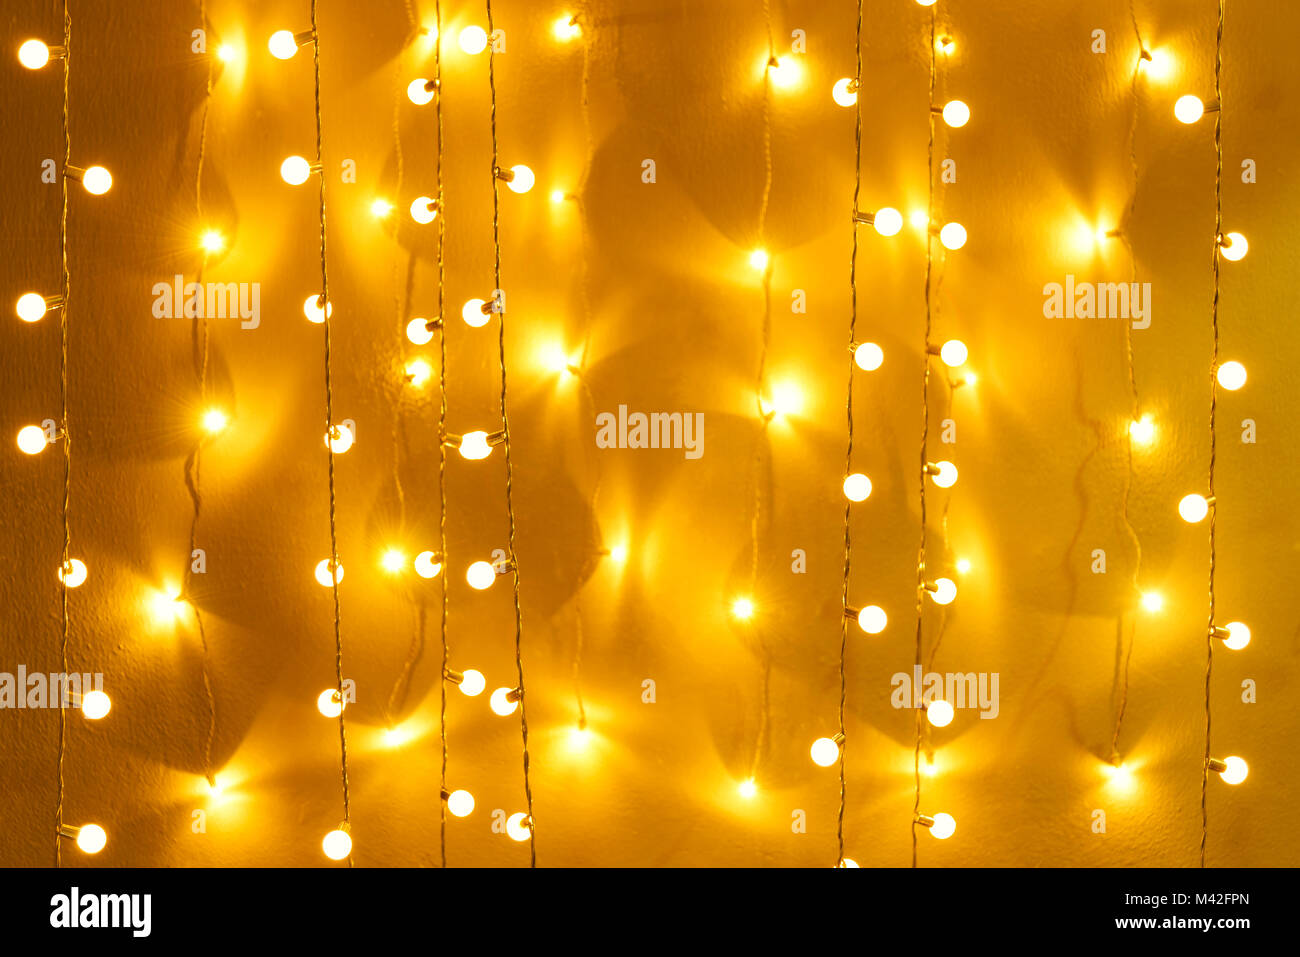 Blurred retro light bulb decor glowing for abstract background Stock ...